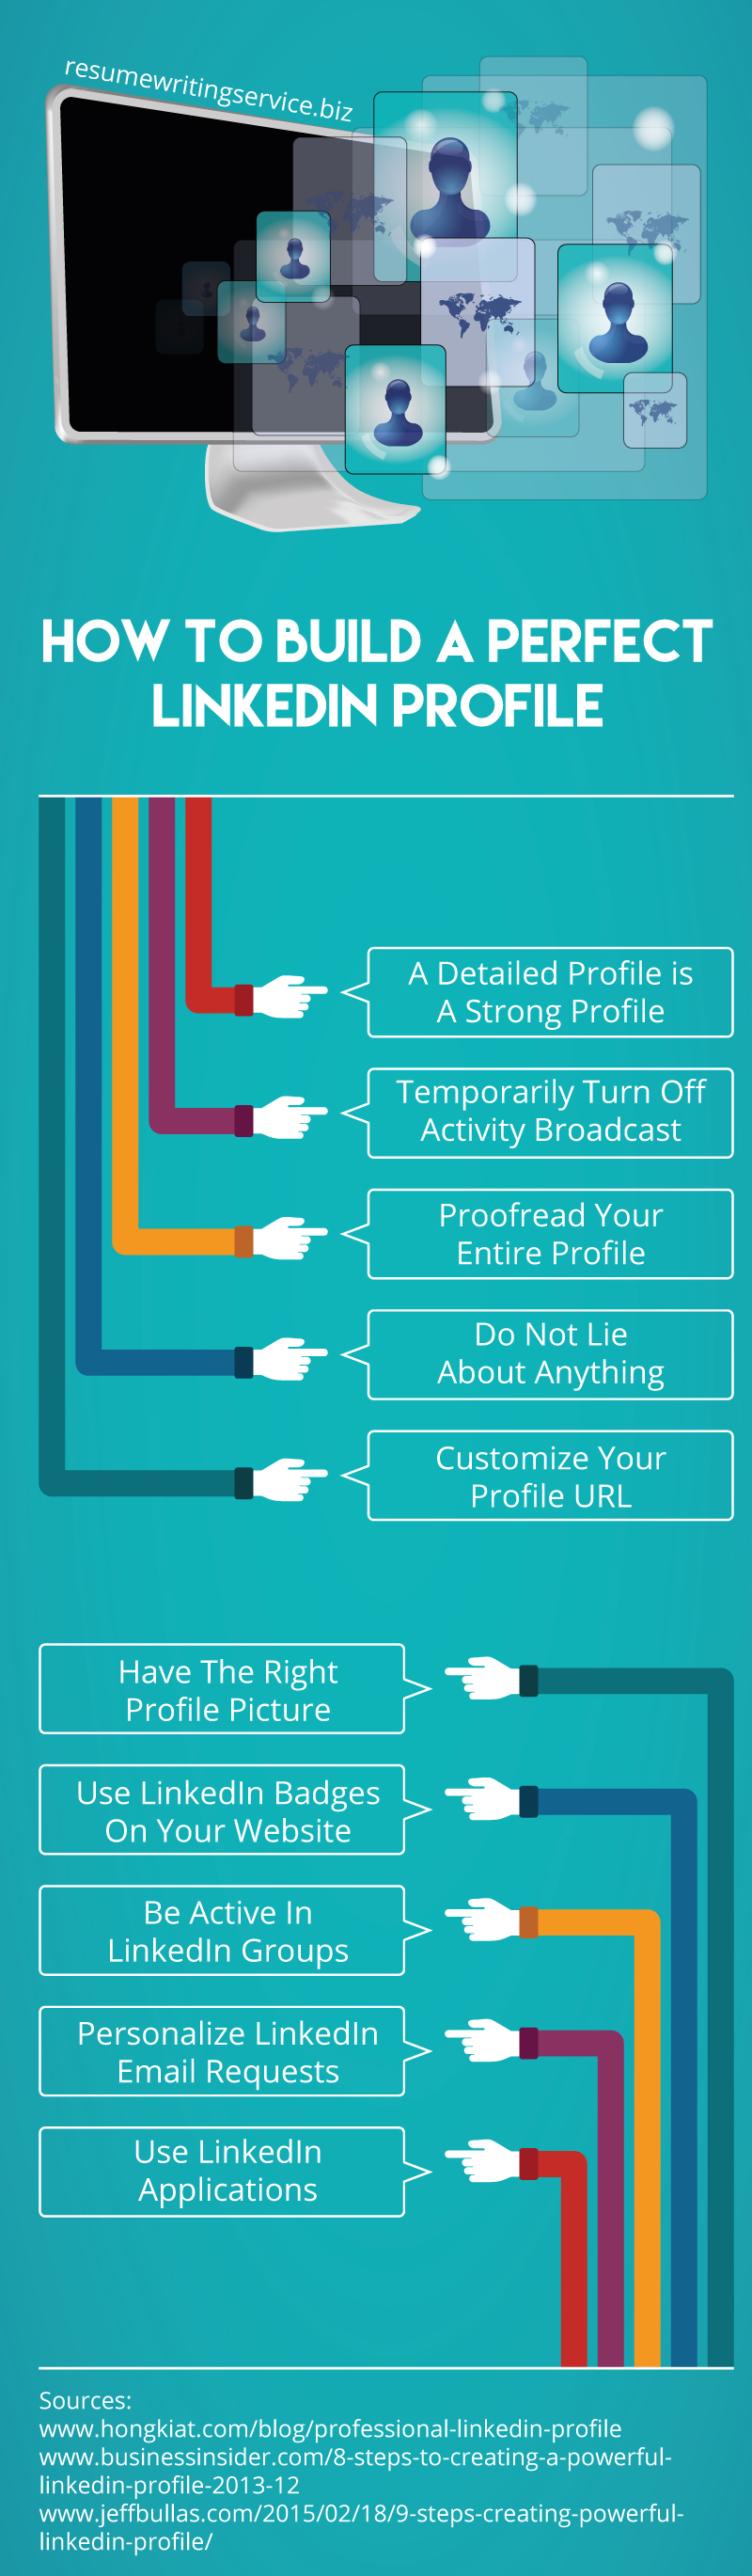 How to build a perfect linkedin profile infographic